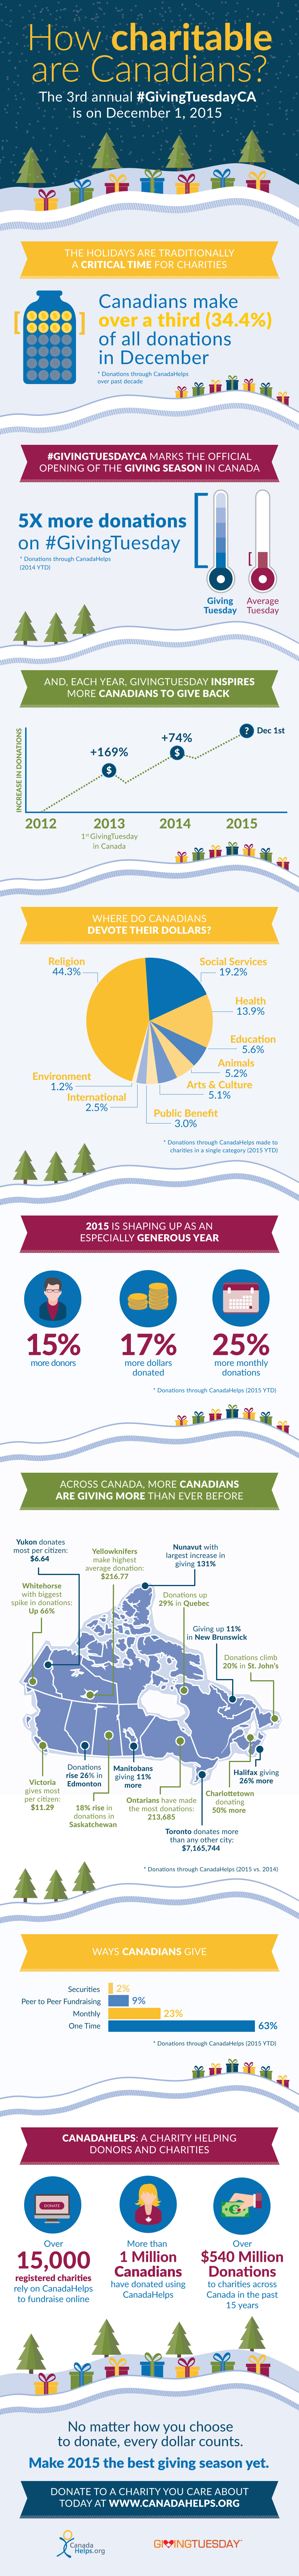 CanadaHelps Holiday Infographic 2015